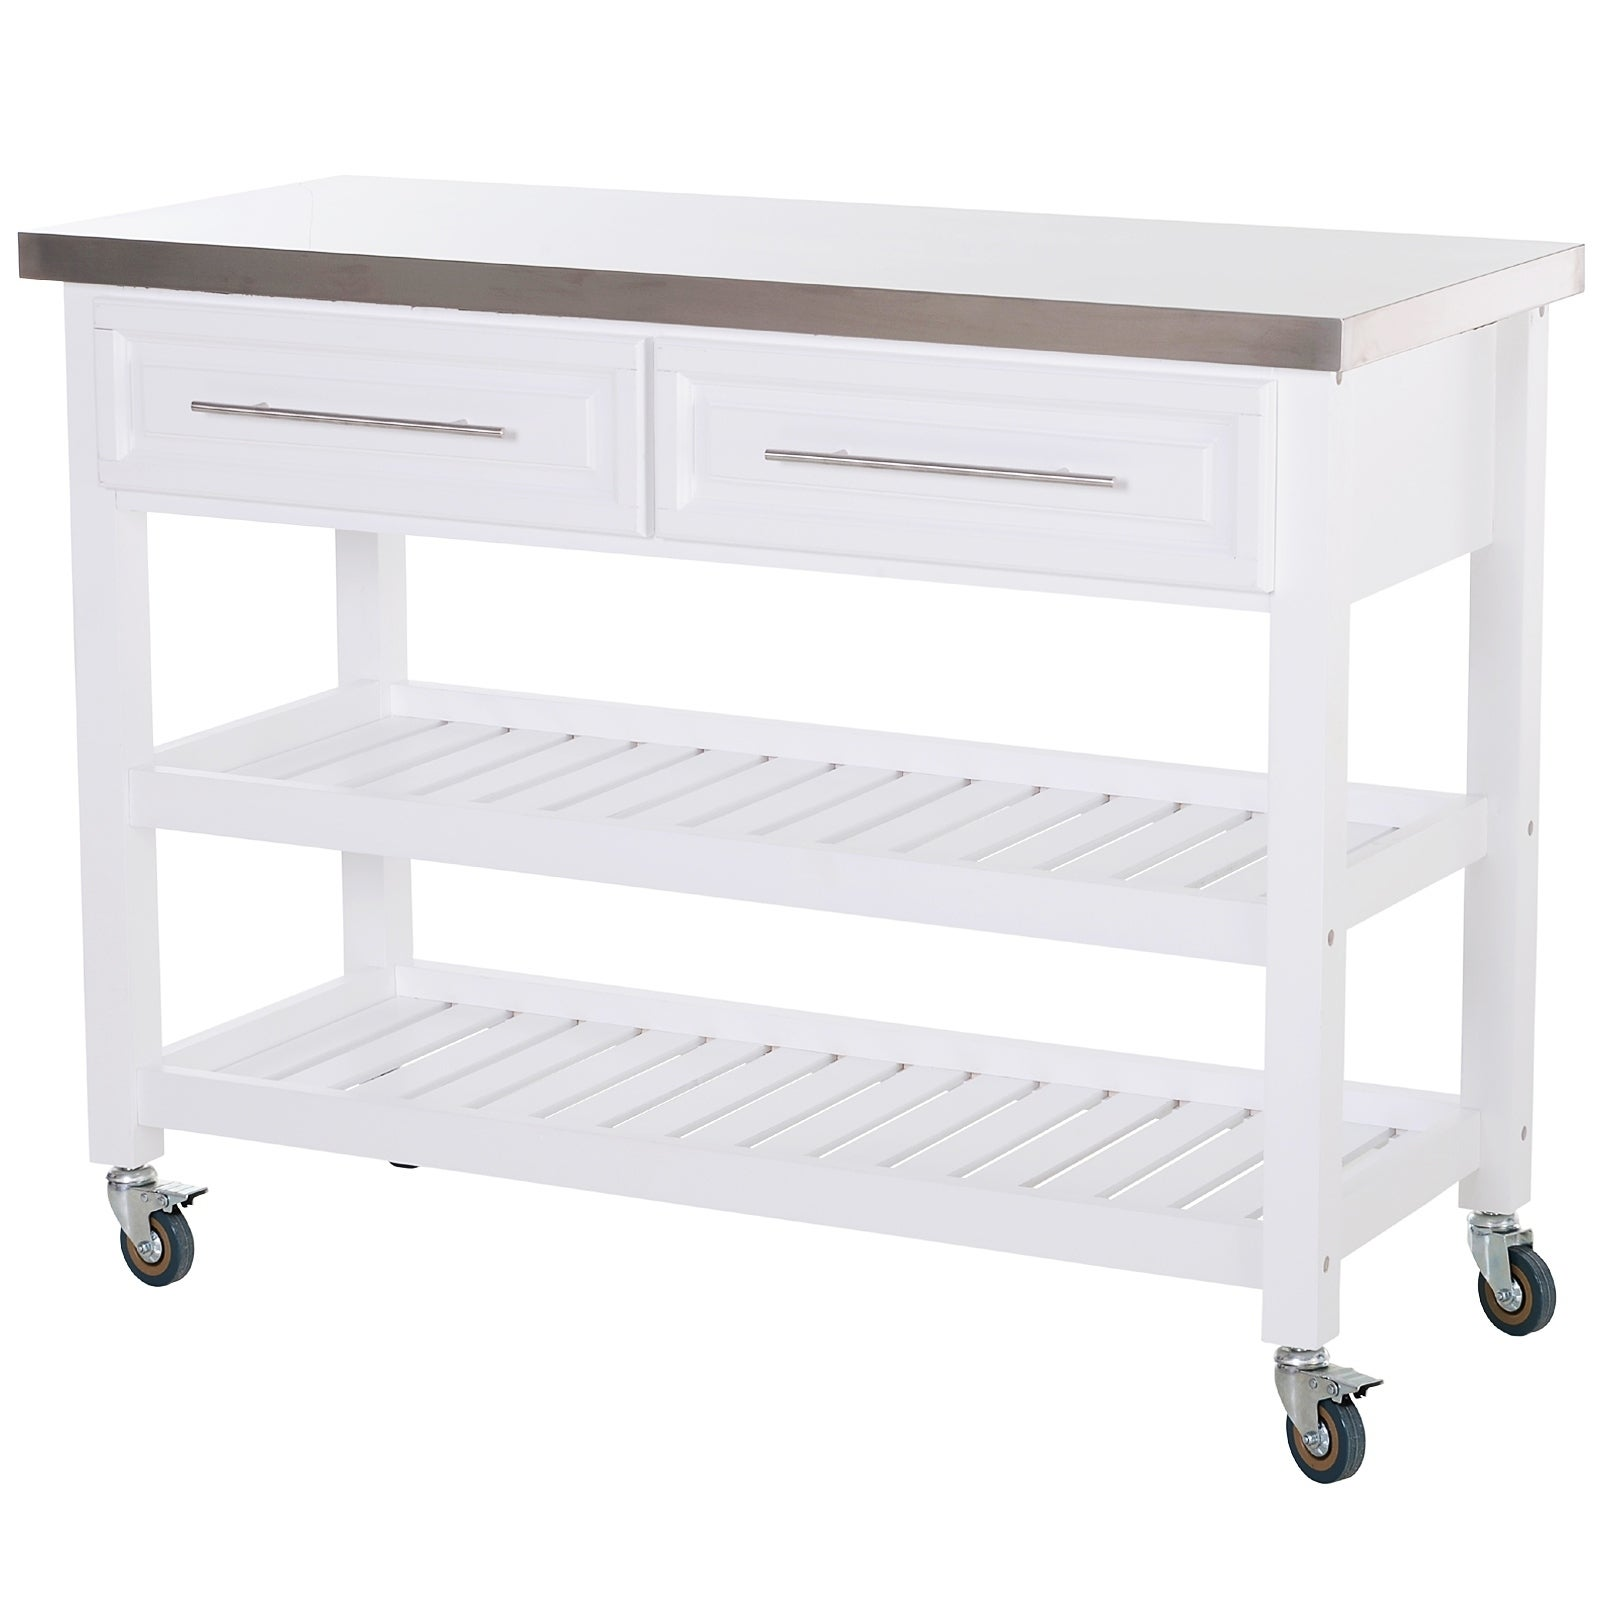 Shop Homcom Rolling Kitchen Island Cart With Drawers Shelves And Stainless Steel Top White On Sale Overstock 29812700